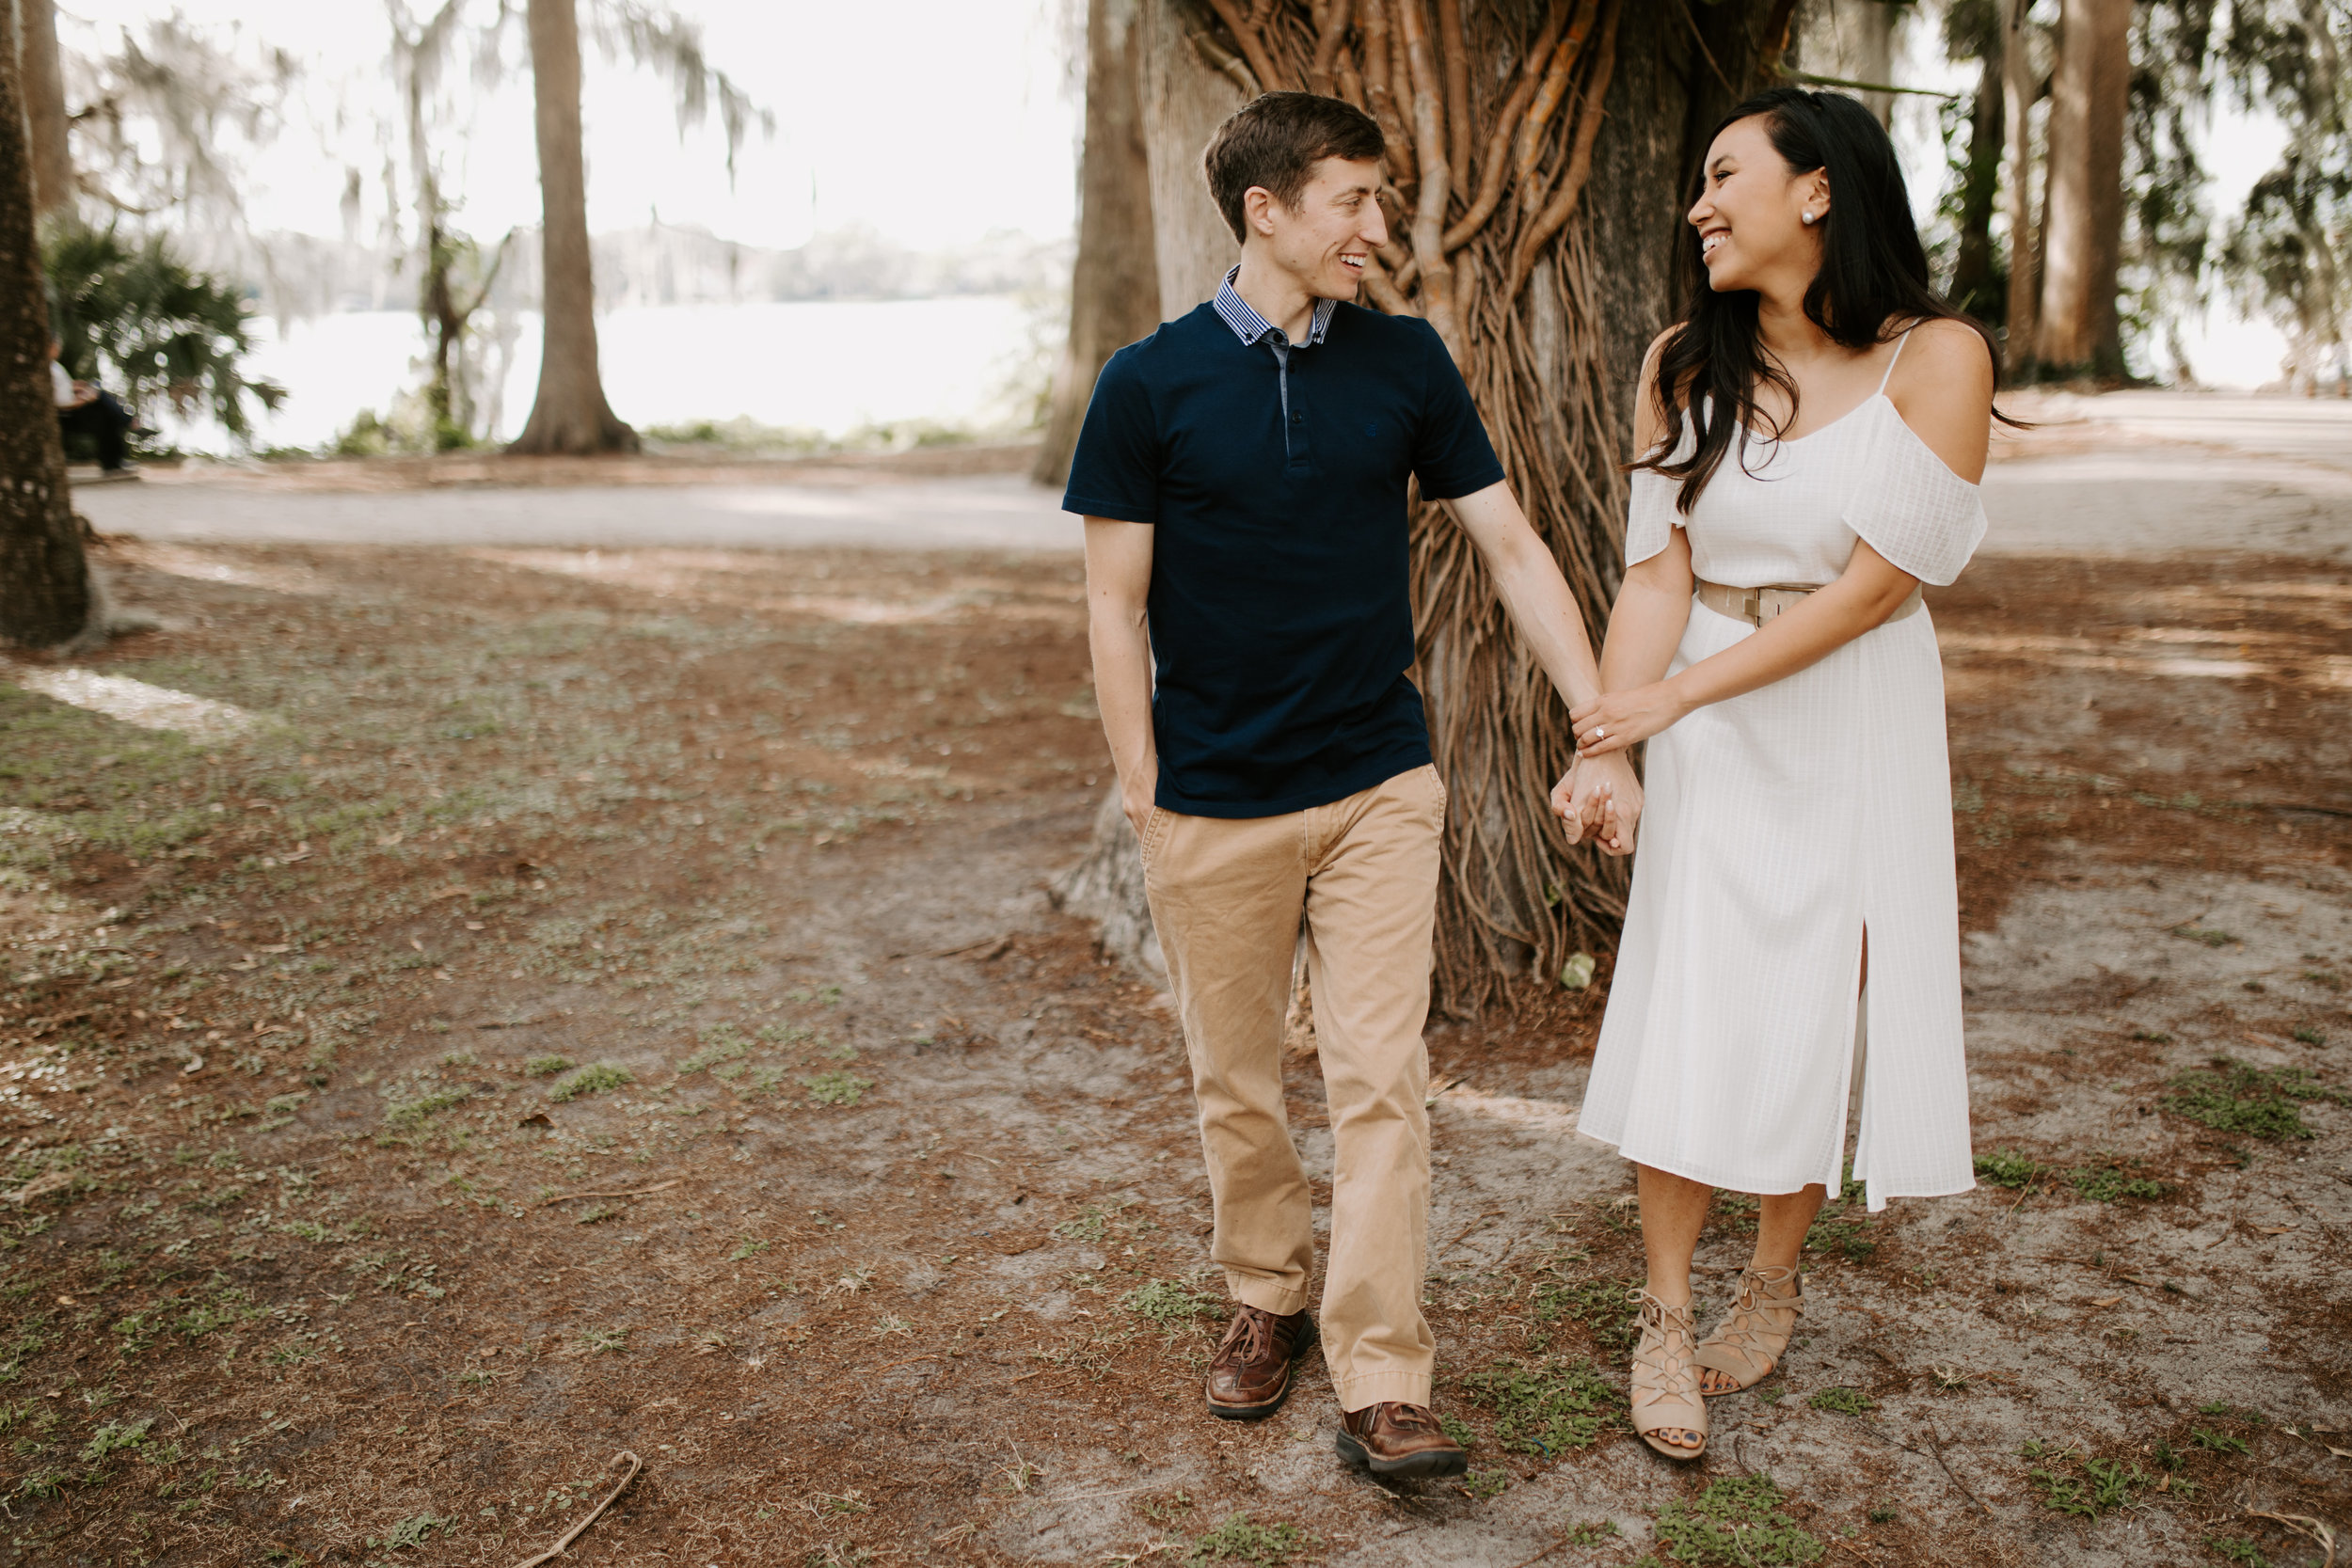 Native_Expressions-Kathryn_+_Jon-Kraft_Azalea_Garden_Engagement-67.jpg